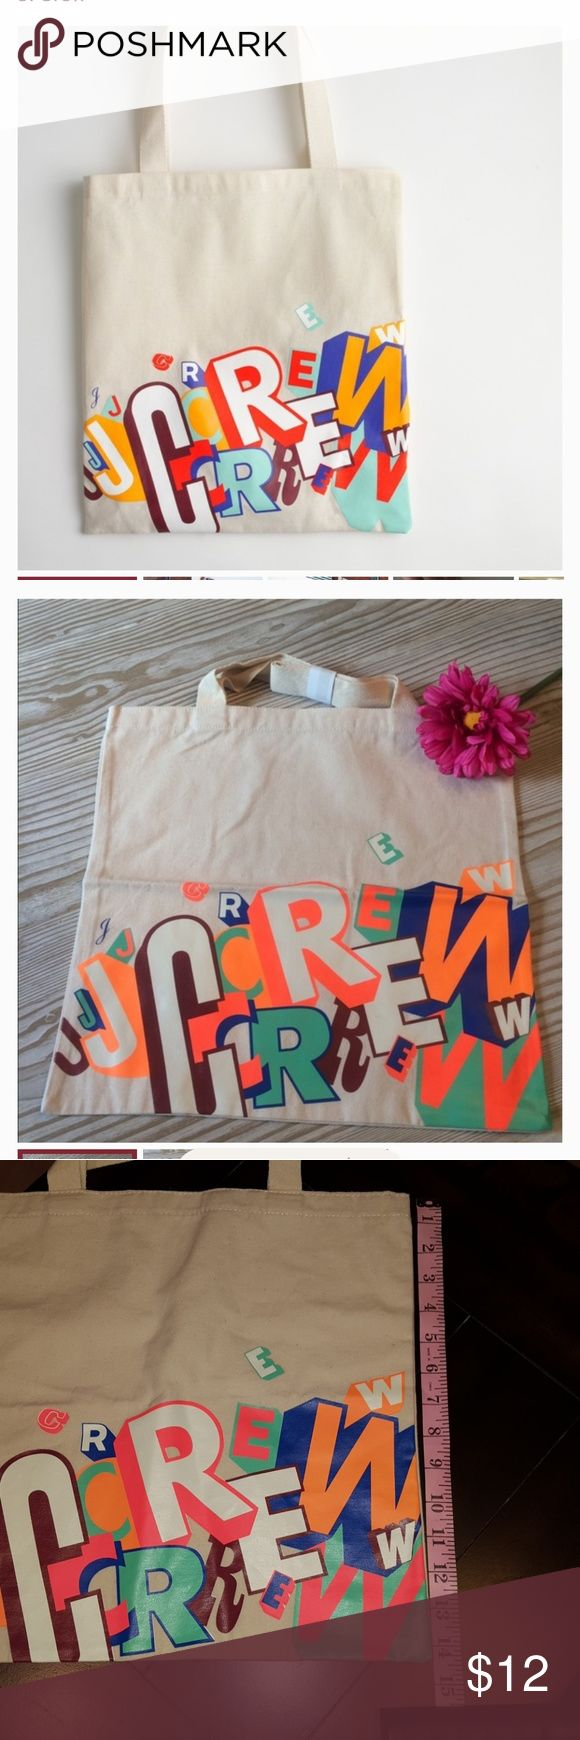 """J crew Tote bag Based on graffiti by Greg Lamarche outside of J. Crew Brooklyn. Cotton canvas bag. 14"""". Never used. Considered """"NWT"""" but did not come with tag J. Crew Bags Totes"""